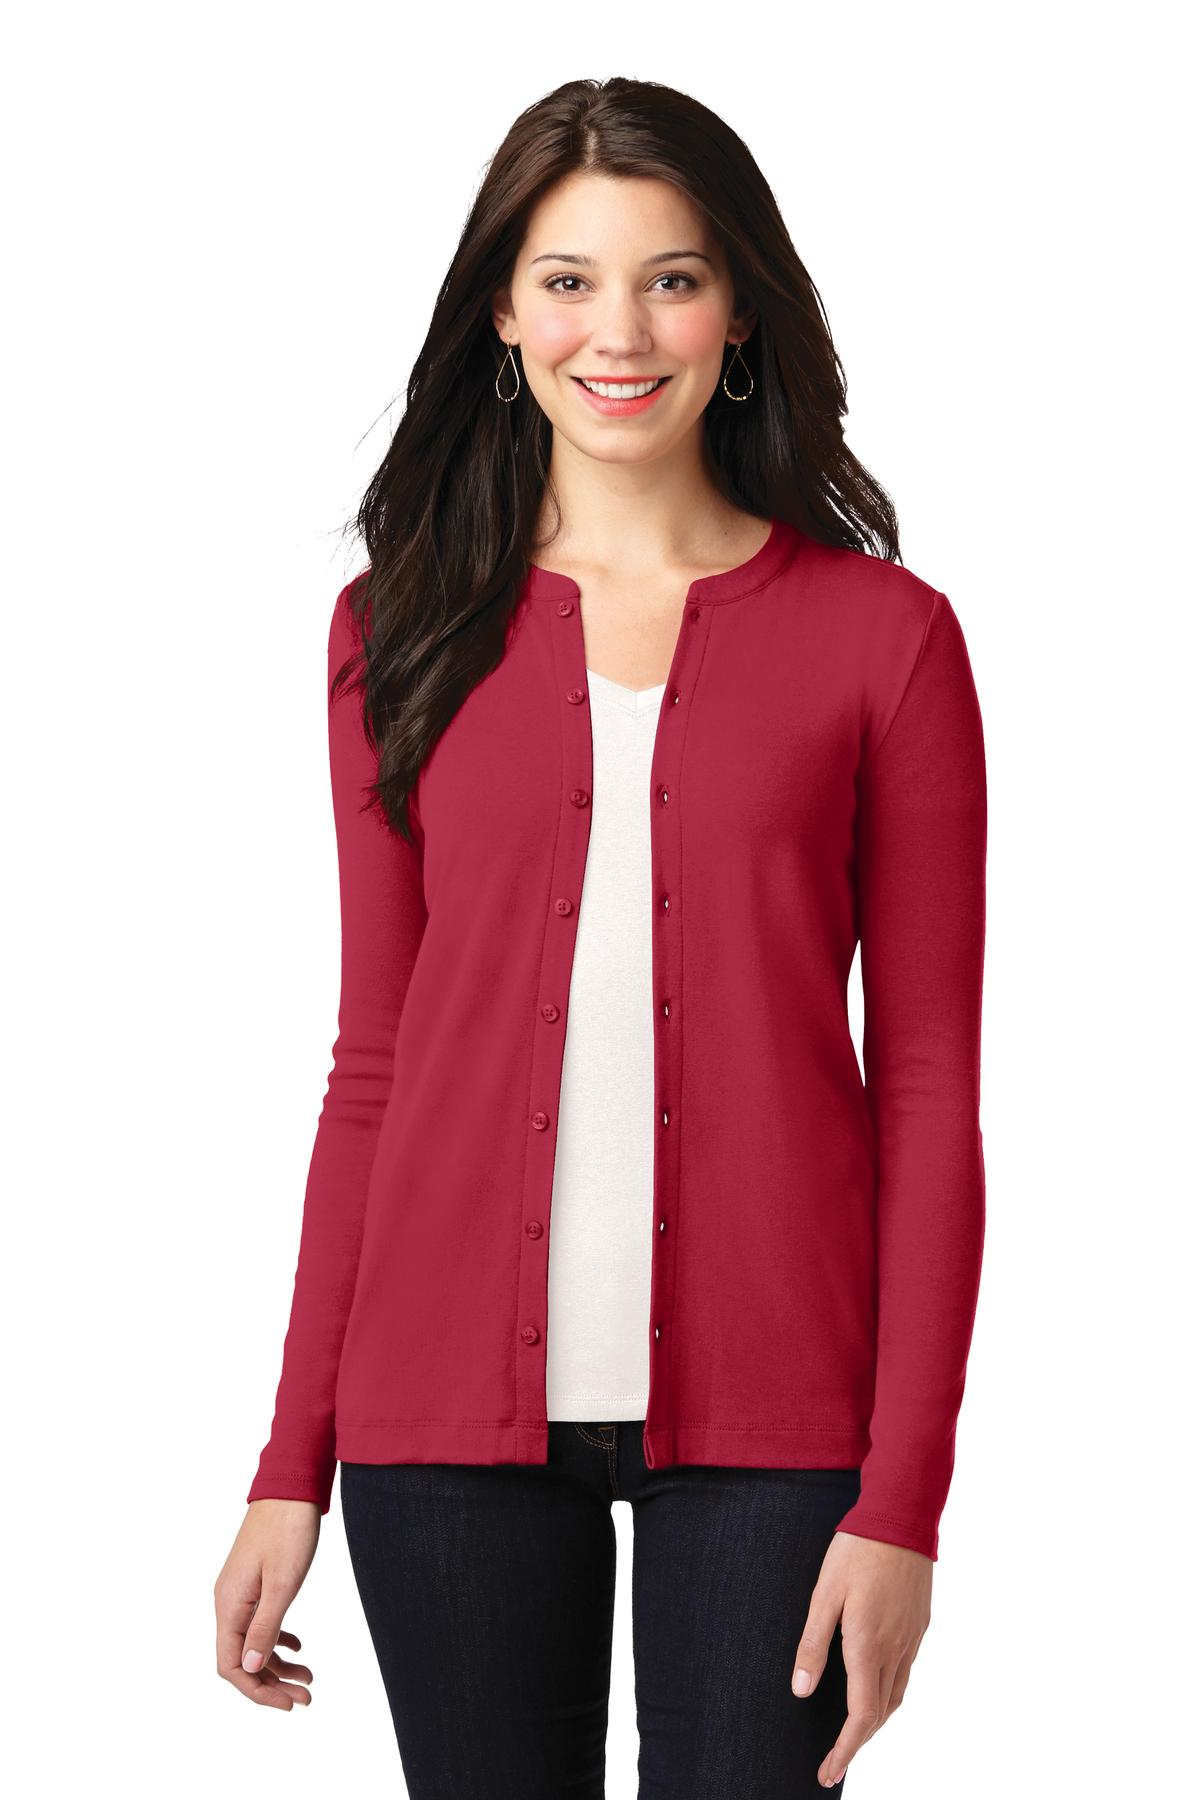 Port Authority ®  Ladies Concept Stretch Button-Front Cardigan. LM1008 - Rich Red